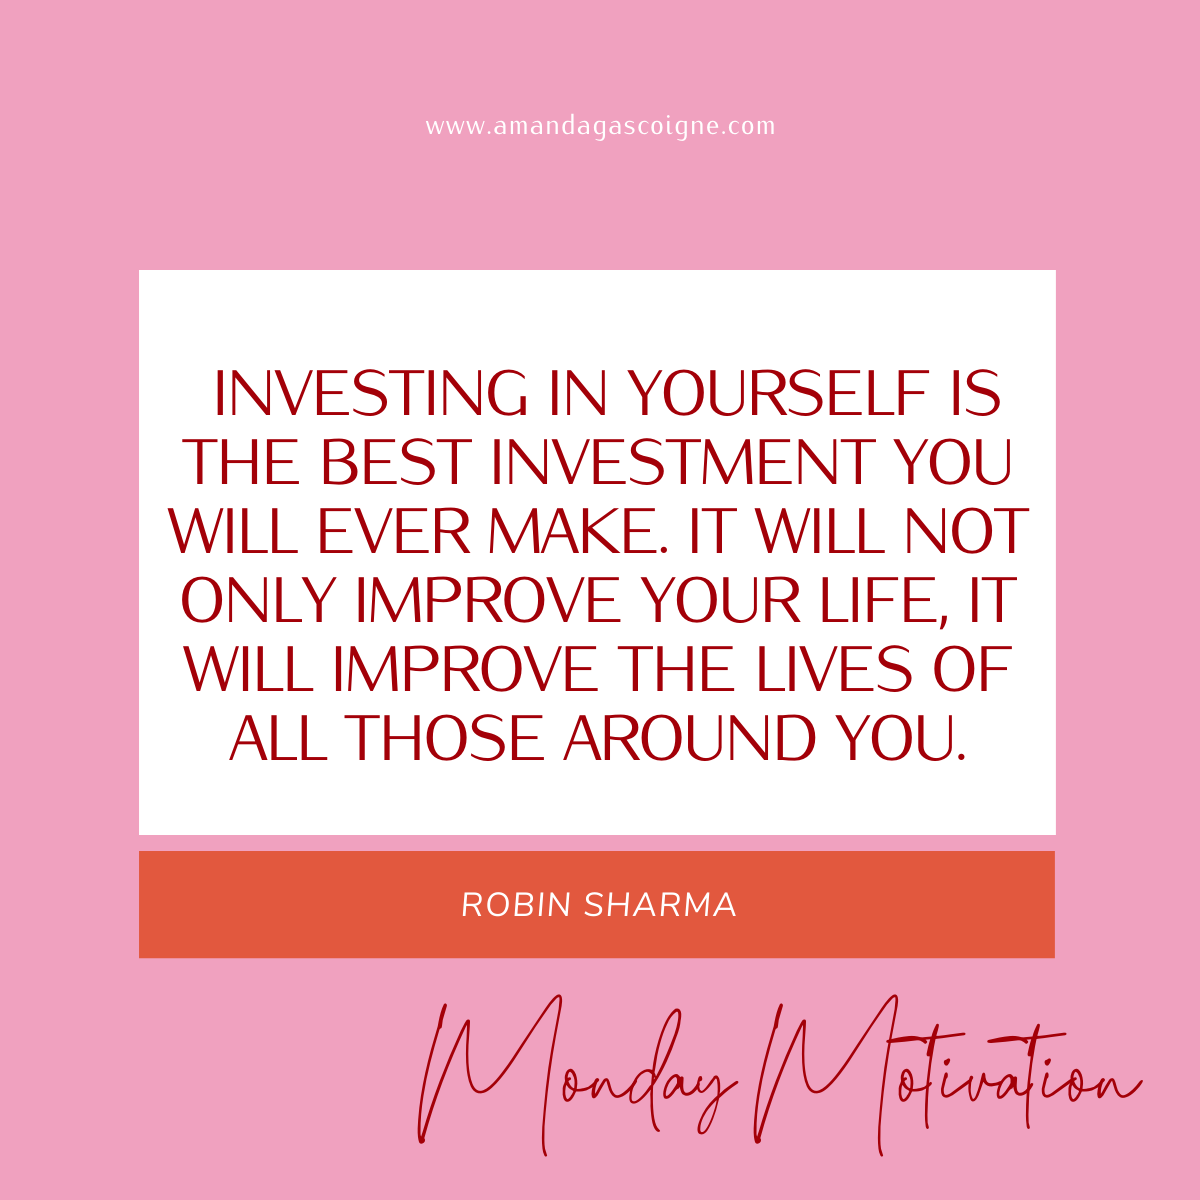 How are you investing in YOU this week?  #mondaymotivation